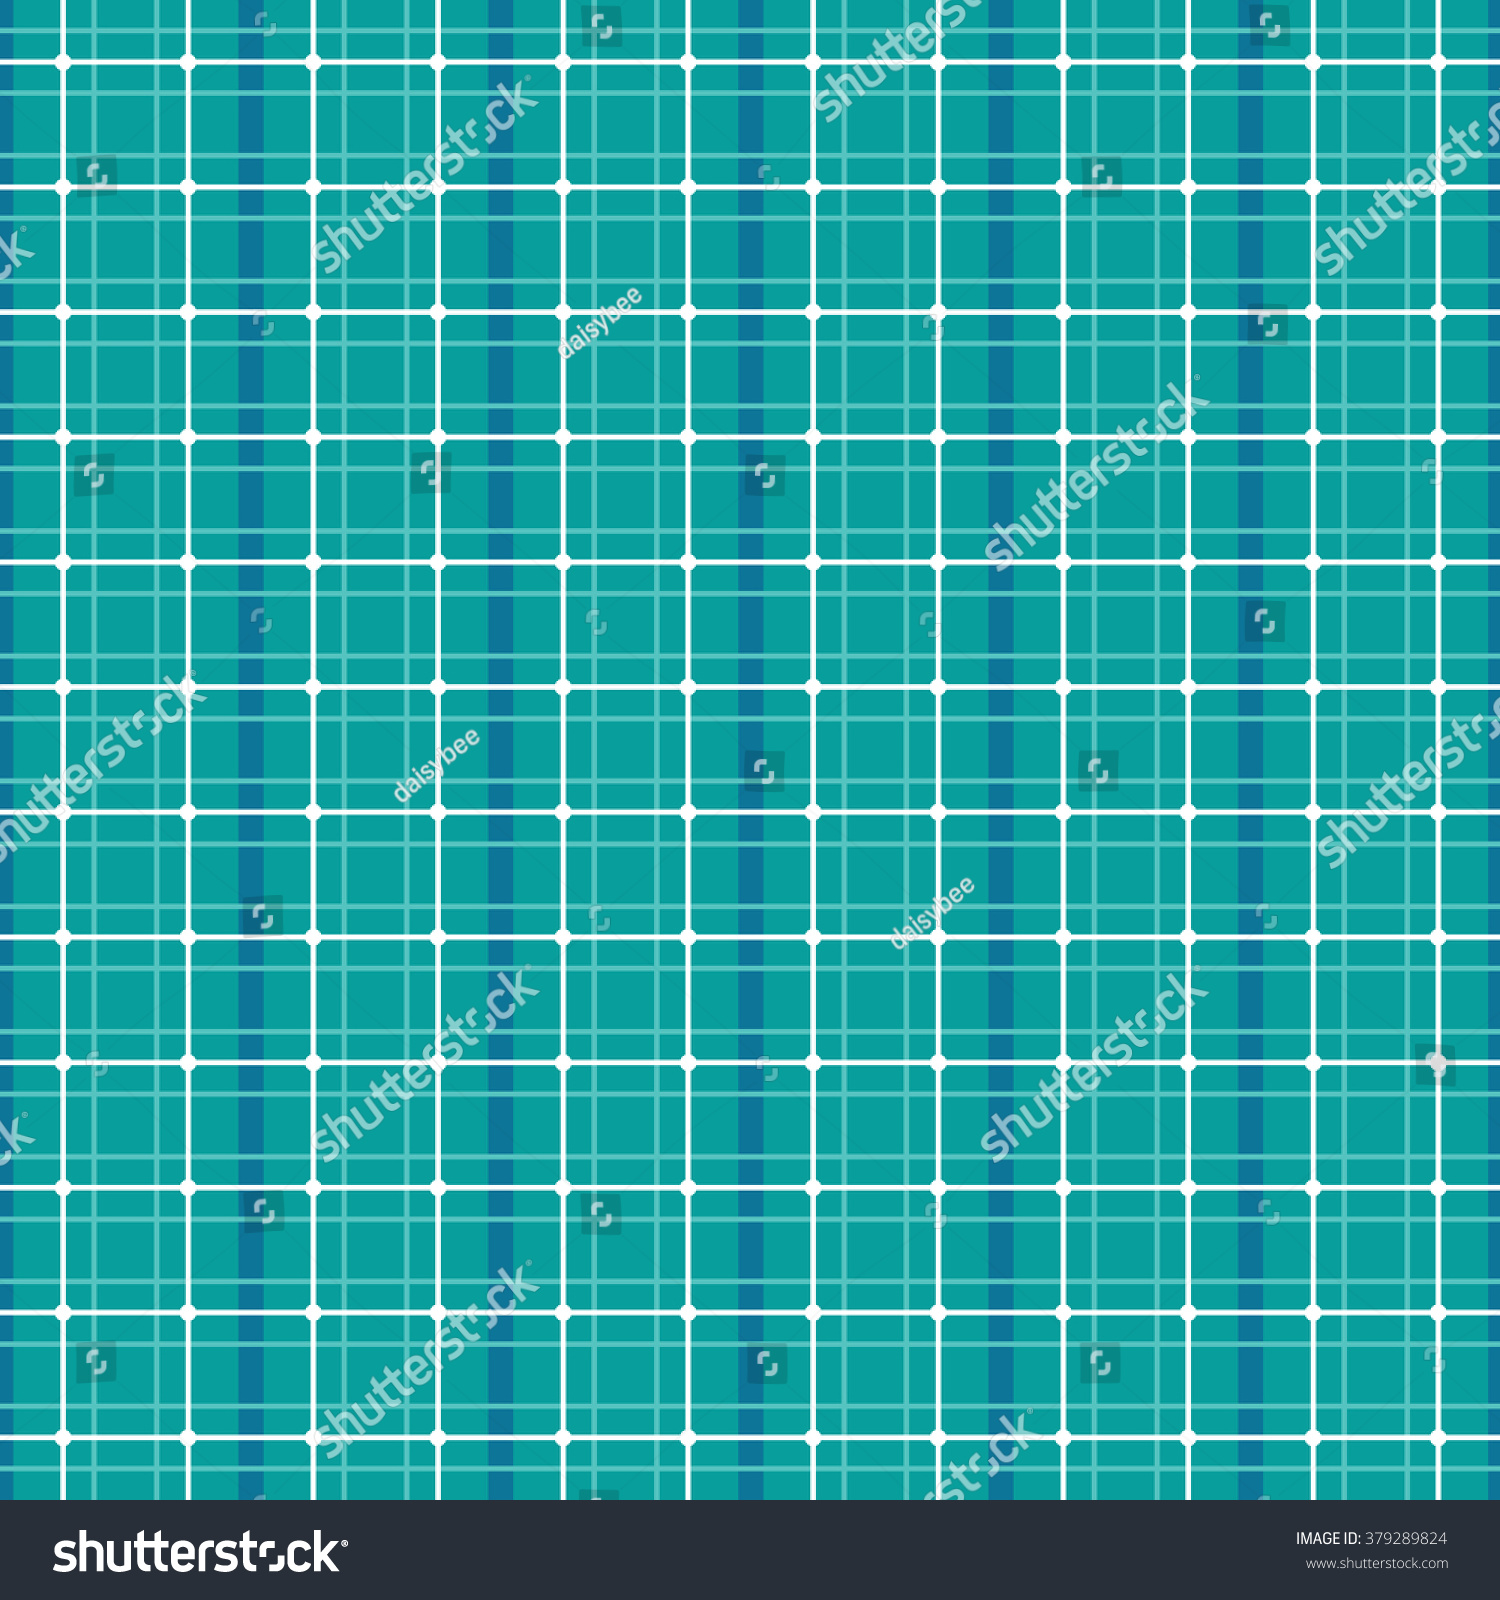 plaid teal mobile phone wallpaper - photo #20